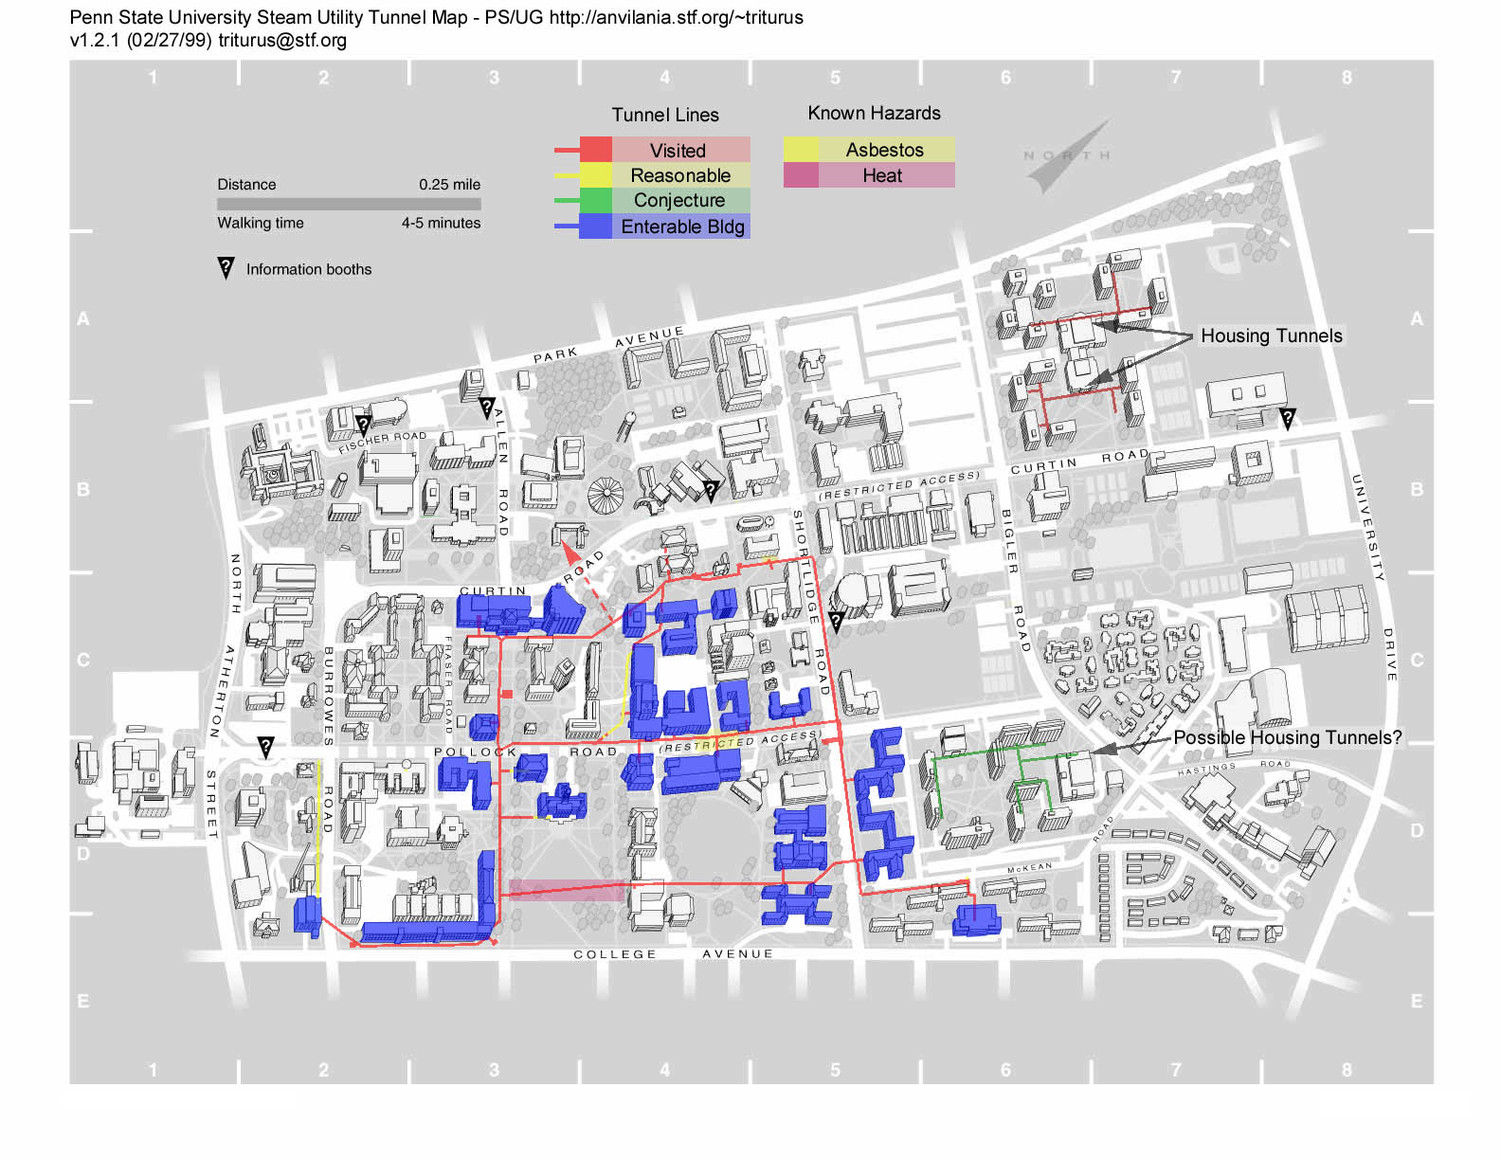 penn state east halls map with Penn State Dorm Map 0zps8vs1e6ejqurxnu Cojoi Wbycdfwg5xbso3twjs on Housing Area Maps likewise 6069510528 together with Hastings Mckean Pennypacker Snyder Stone Stuart Floor Plan together with 4947142775 further The Black Sheeps Judgmental Map Of East Lansing.